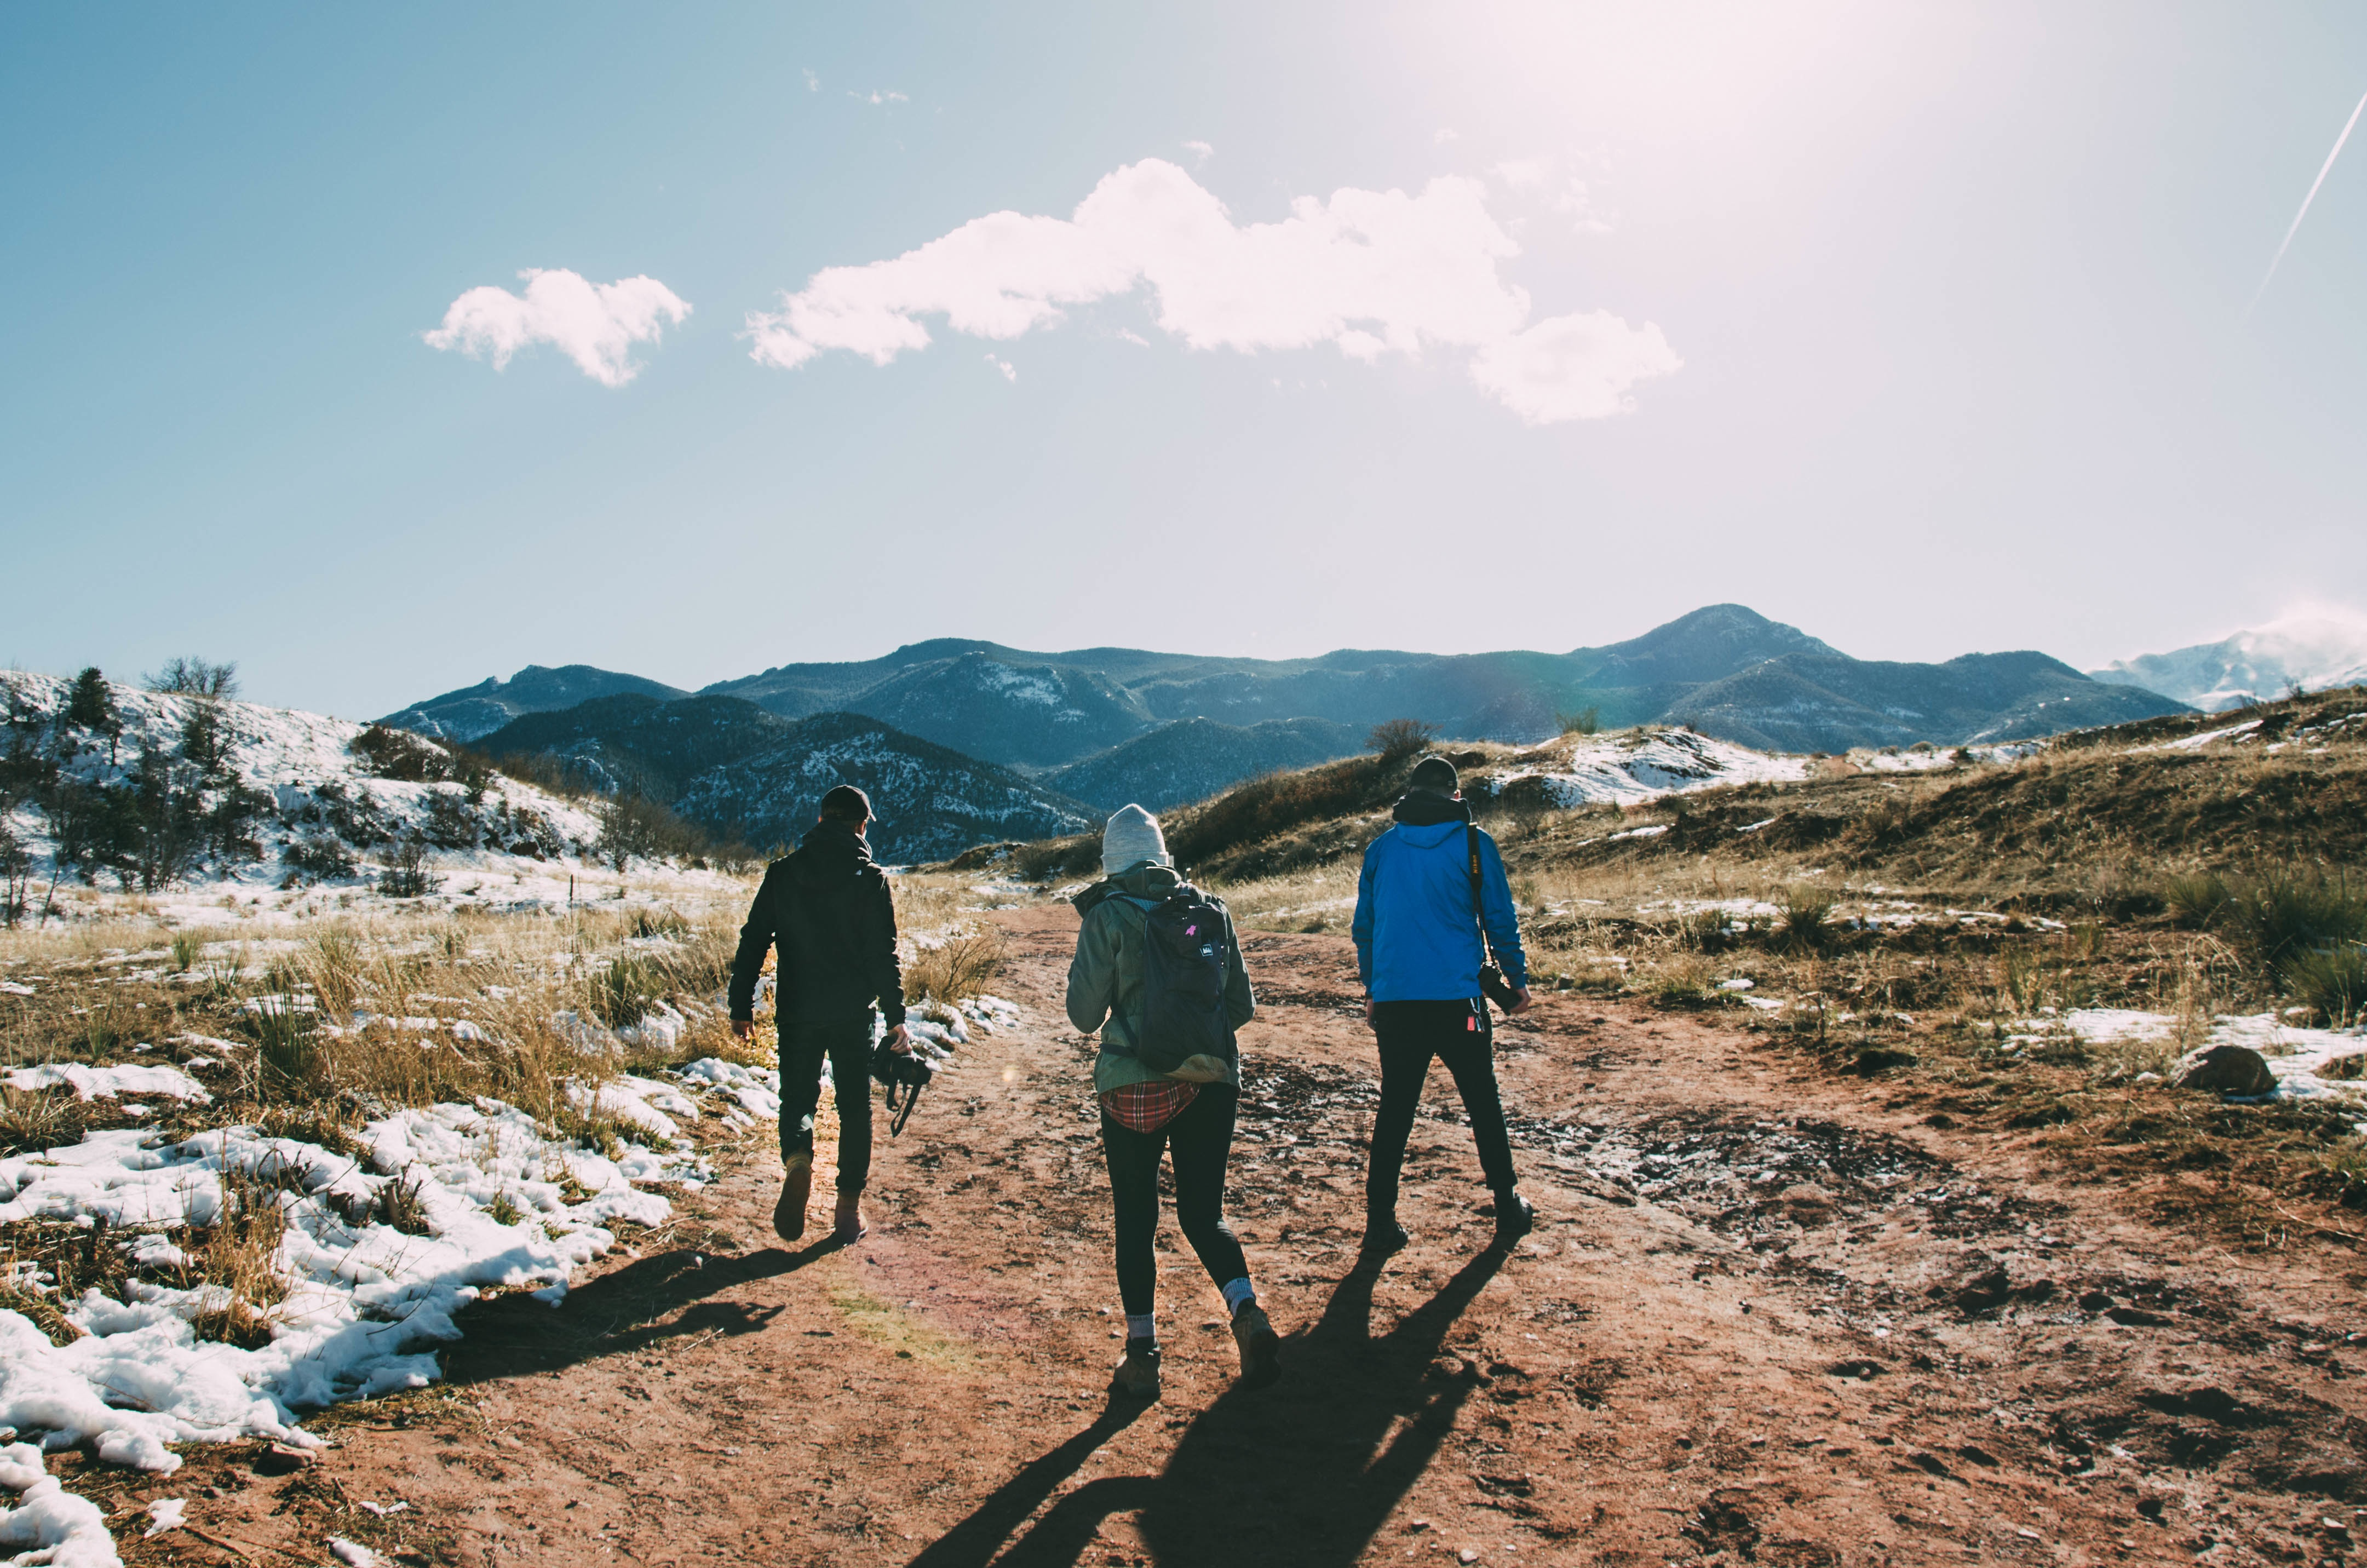 three hikers heading into the mountains with their cameras